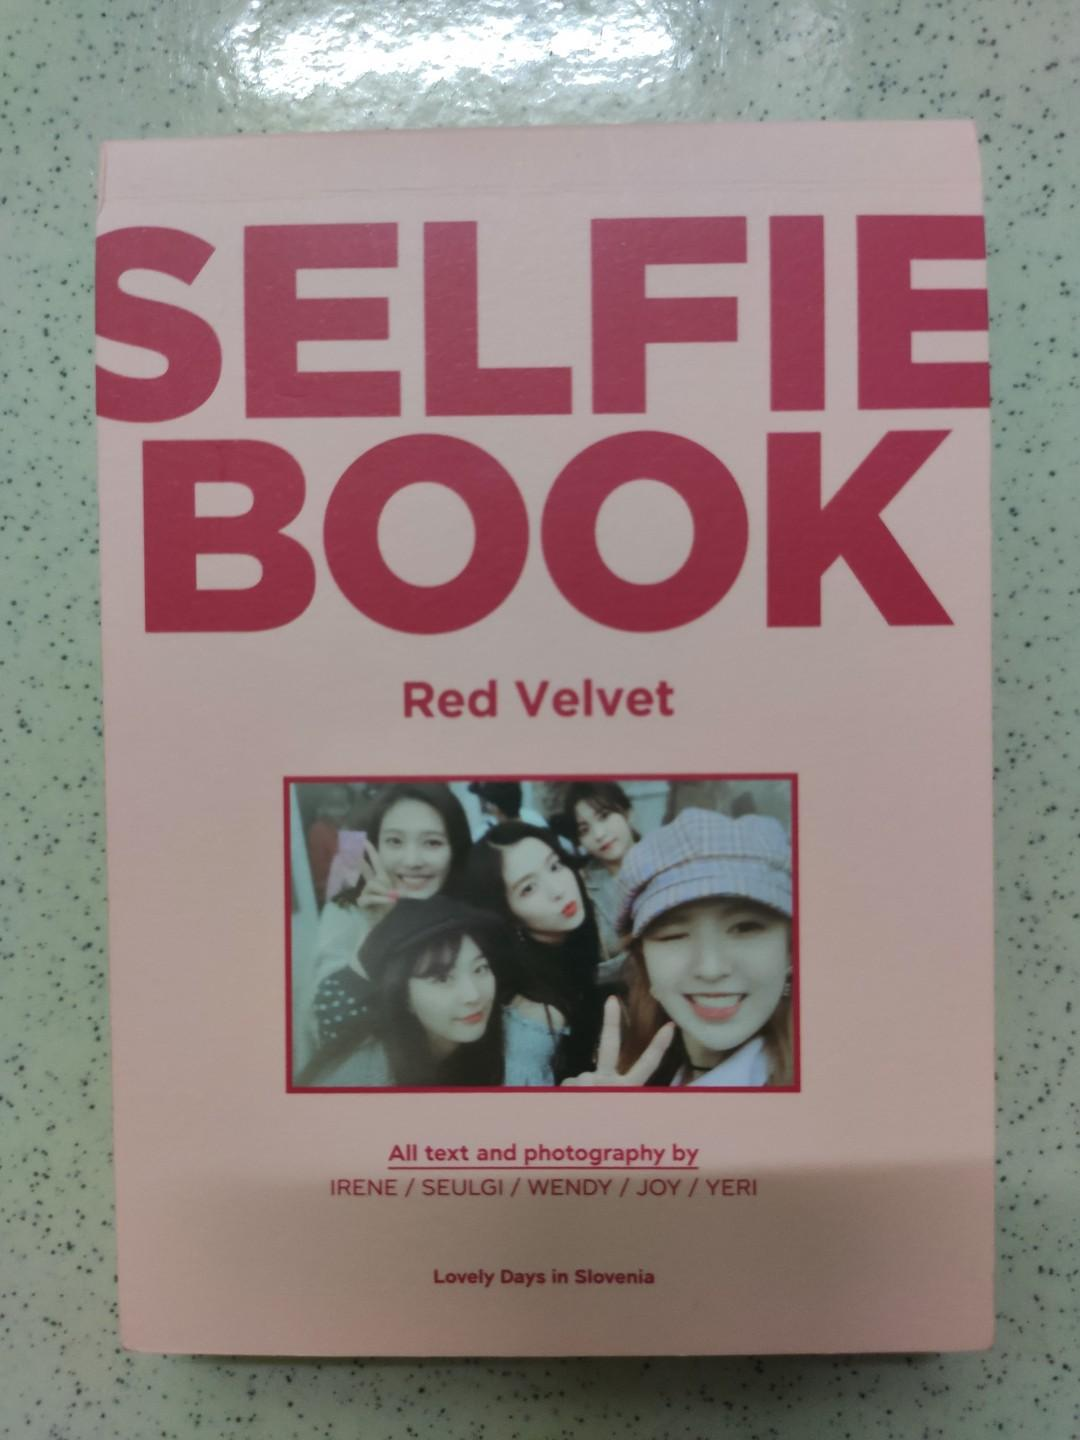 Red velvet Selfie book 2/Blackpink Kill this Love album/Red Velvet The Red/Rookie/Red summer/Peek A Boo/Bad Boy